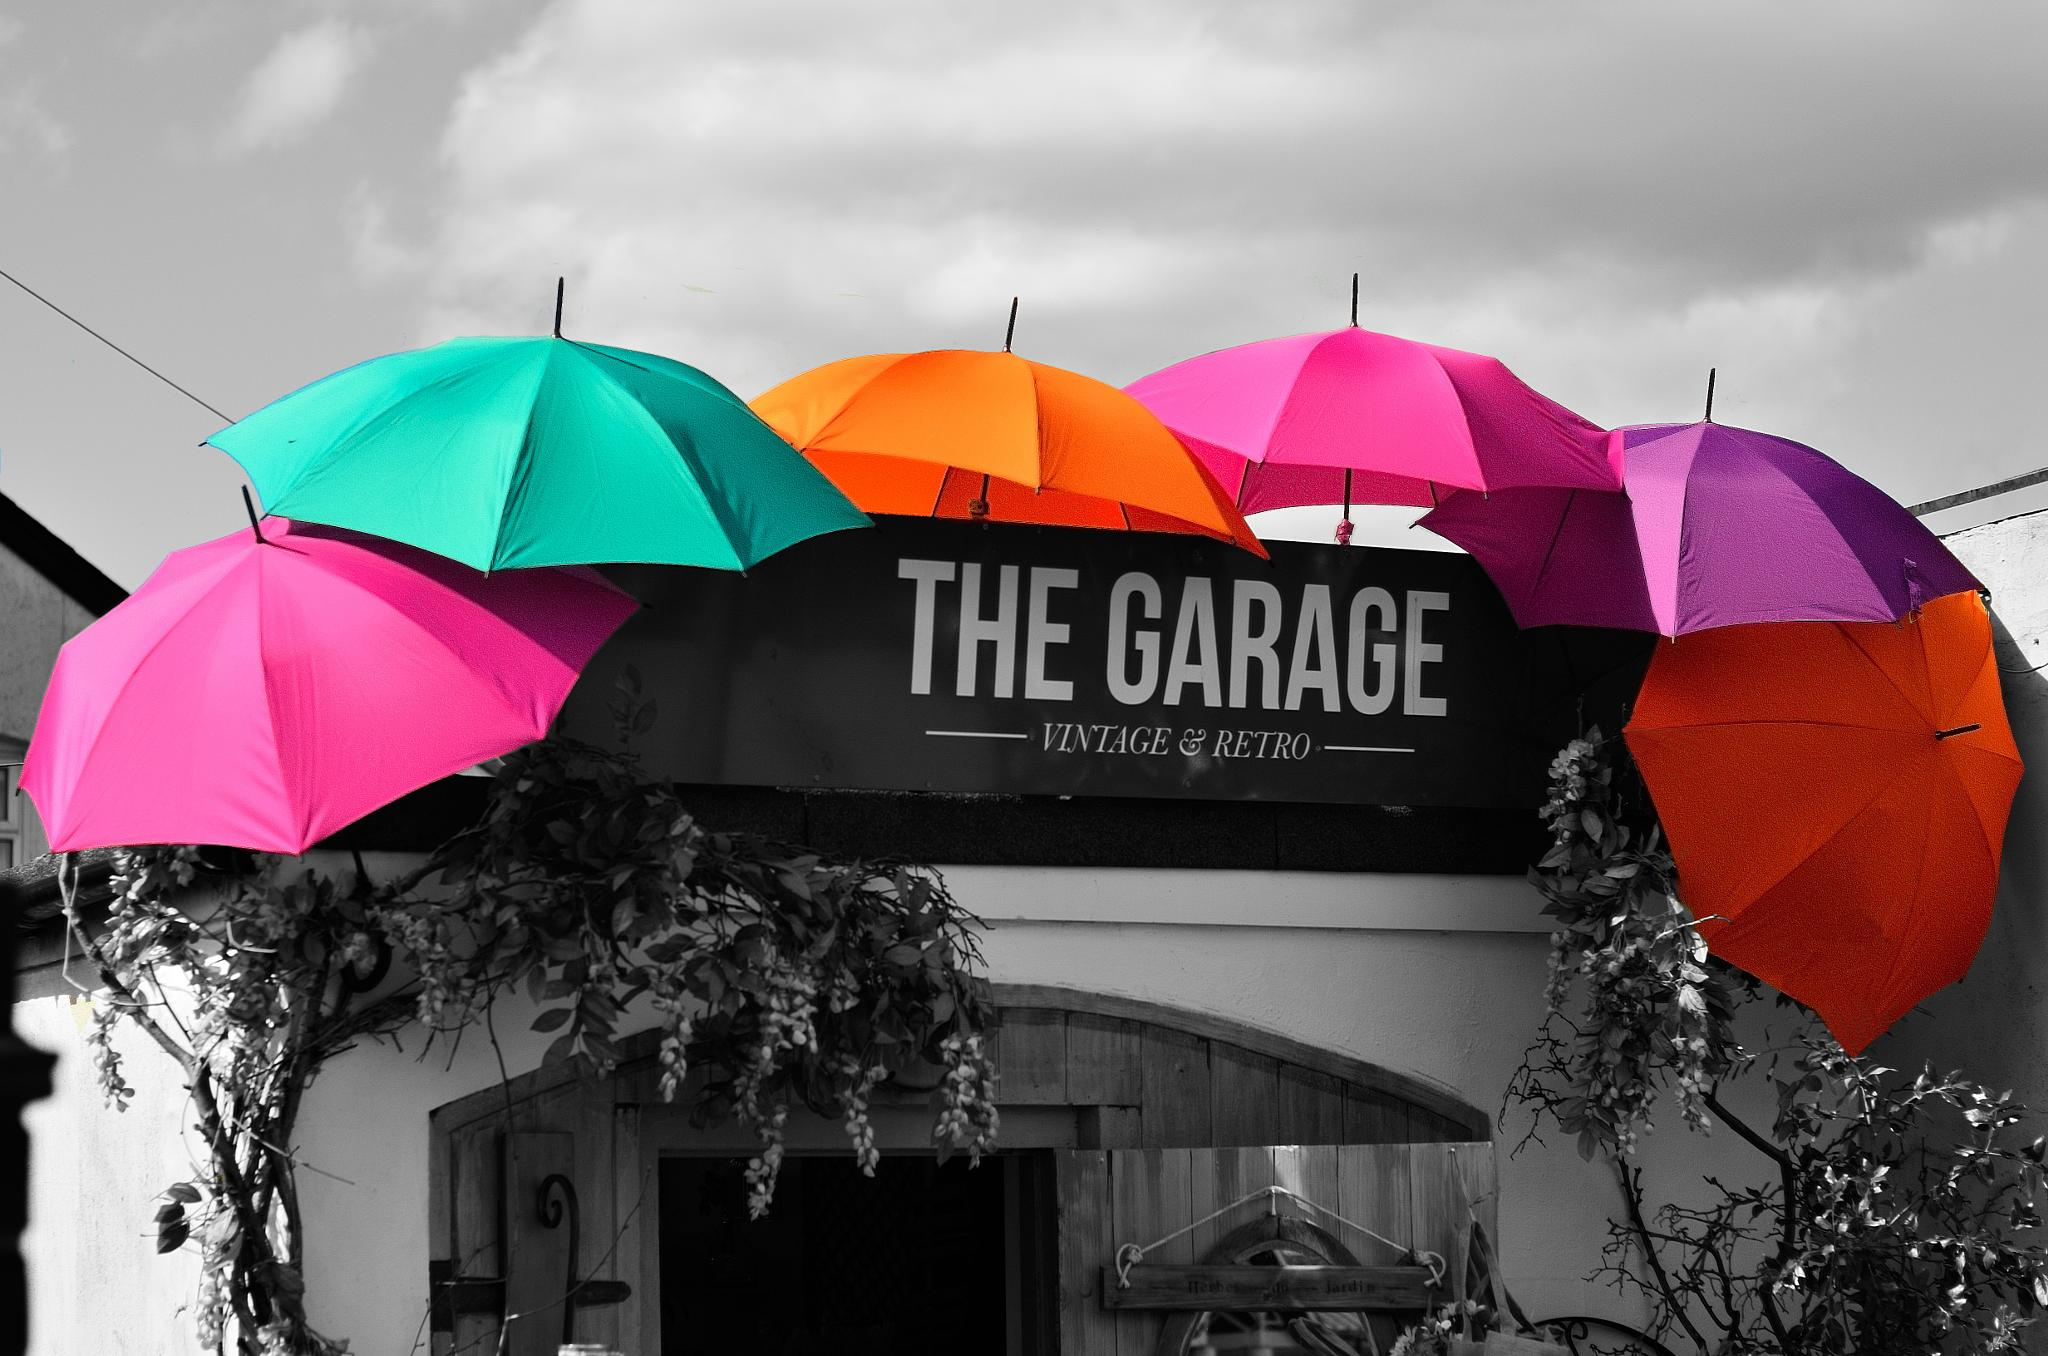 The Garage by pmarvin